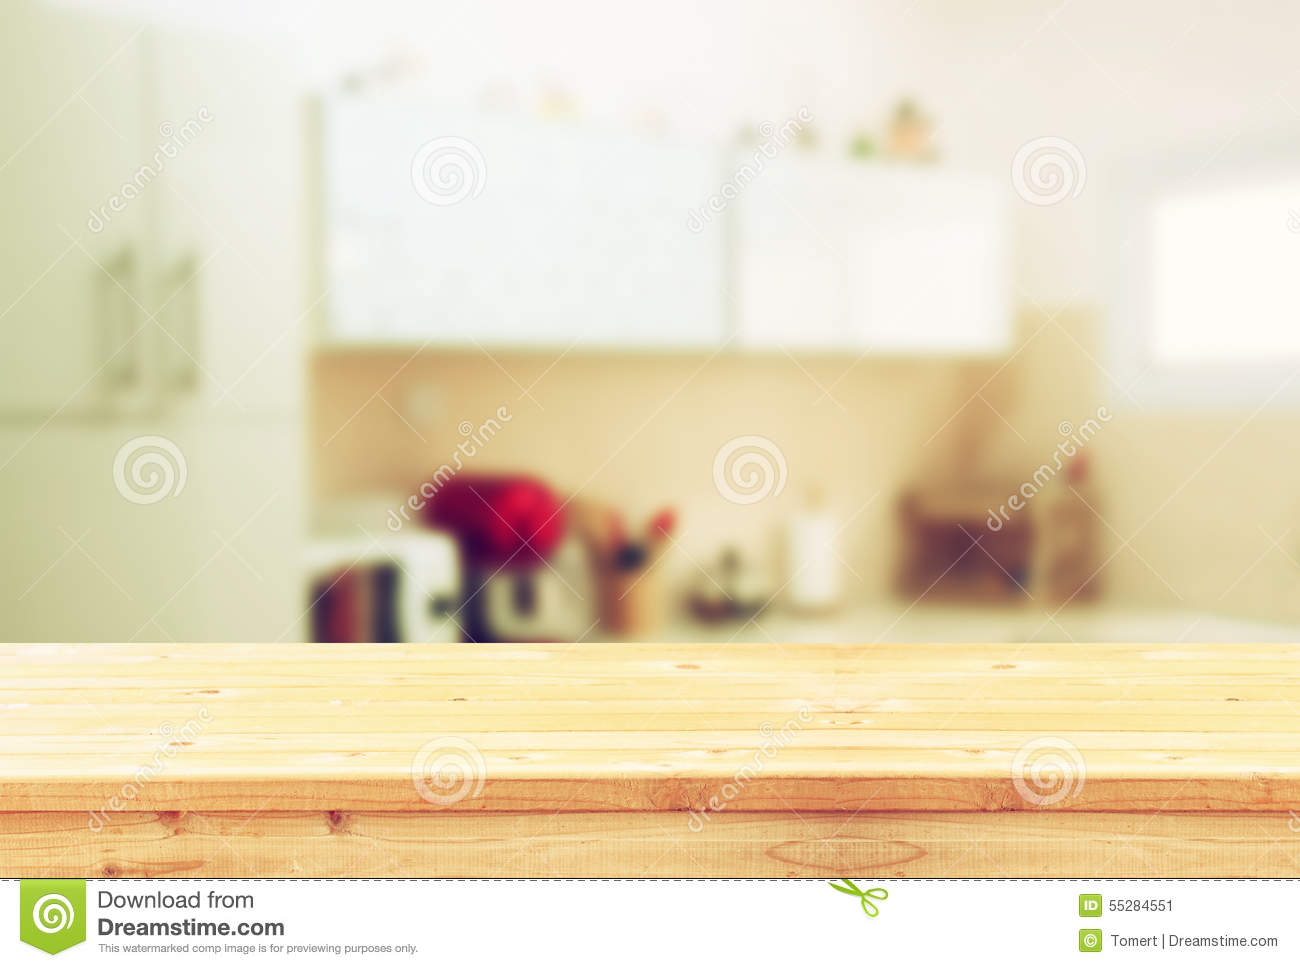 Empty Kitchen Wall Empty Table Board And Defocused White Retro Kitchen Background